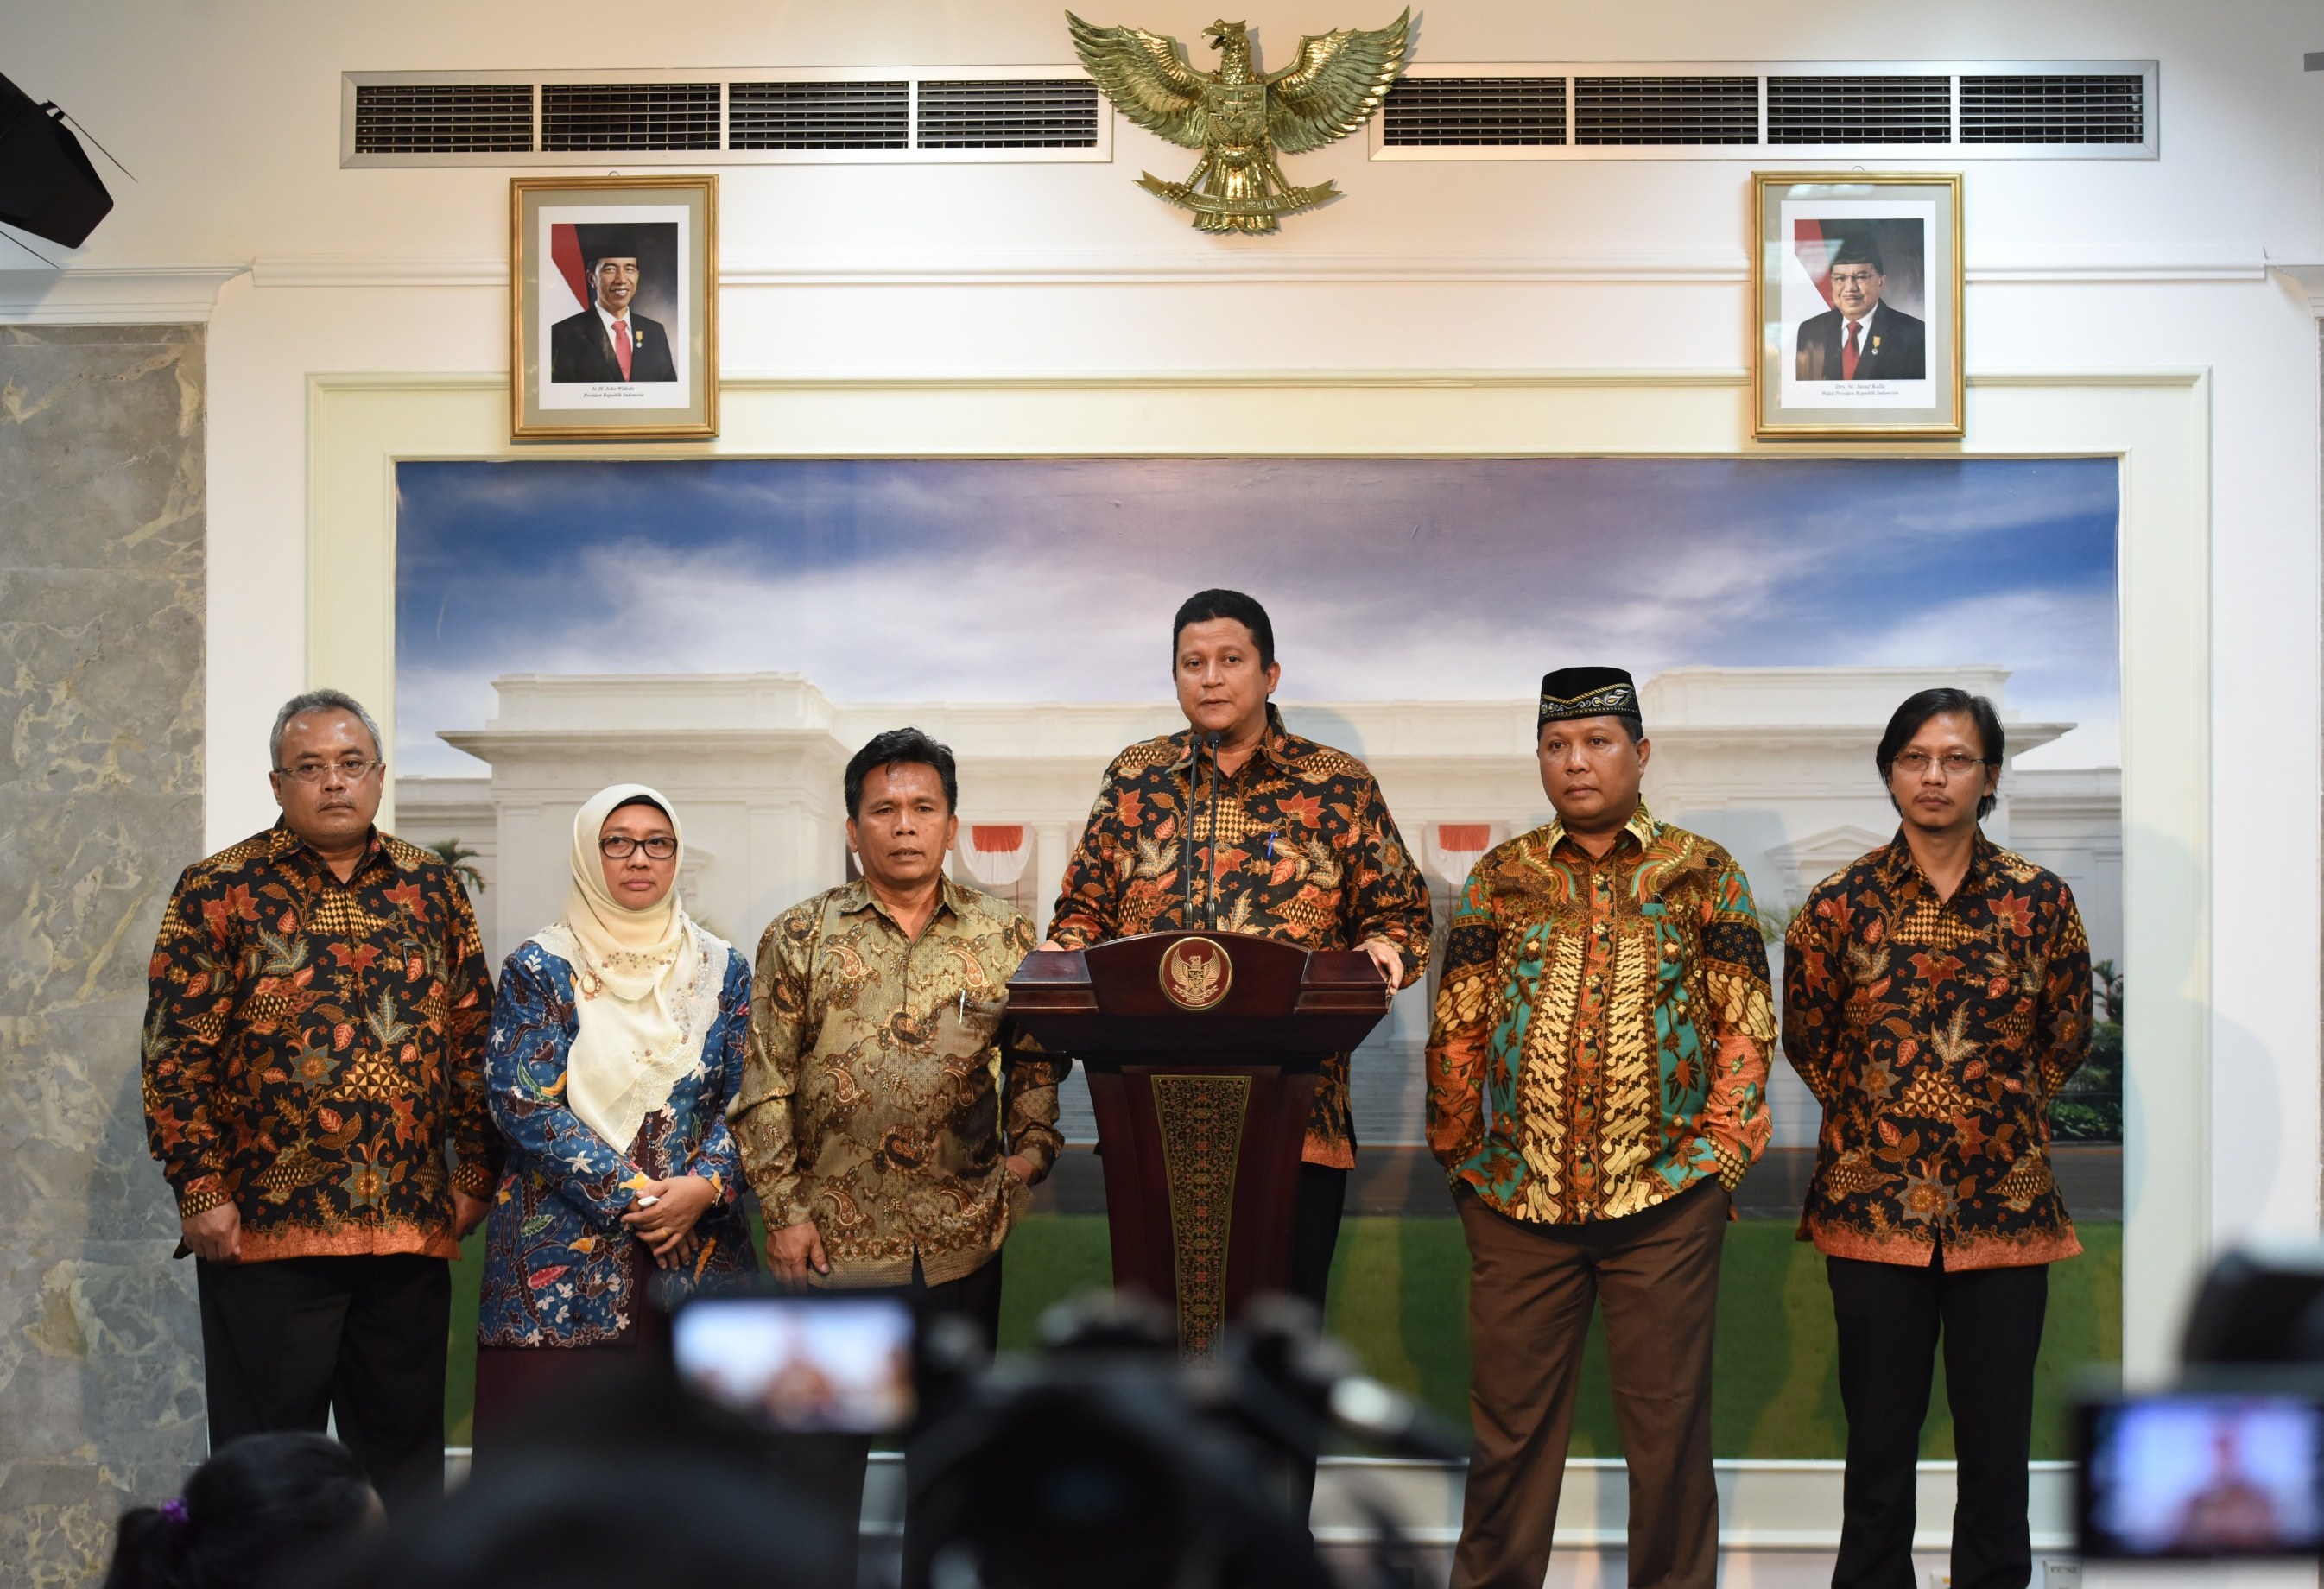 Chairman of Bawaslu for the 2012-2017 period delivers a press statement at the Presidential Office, Jakarta, Monday (10/4). (Photo: PR/Jay)